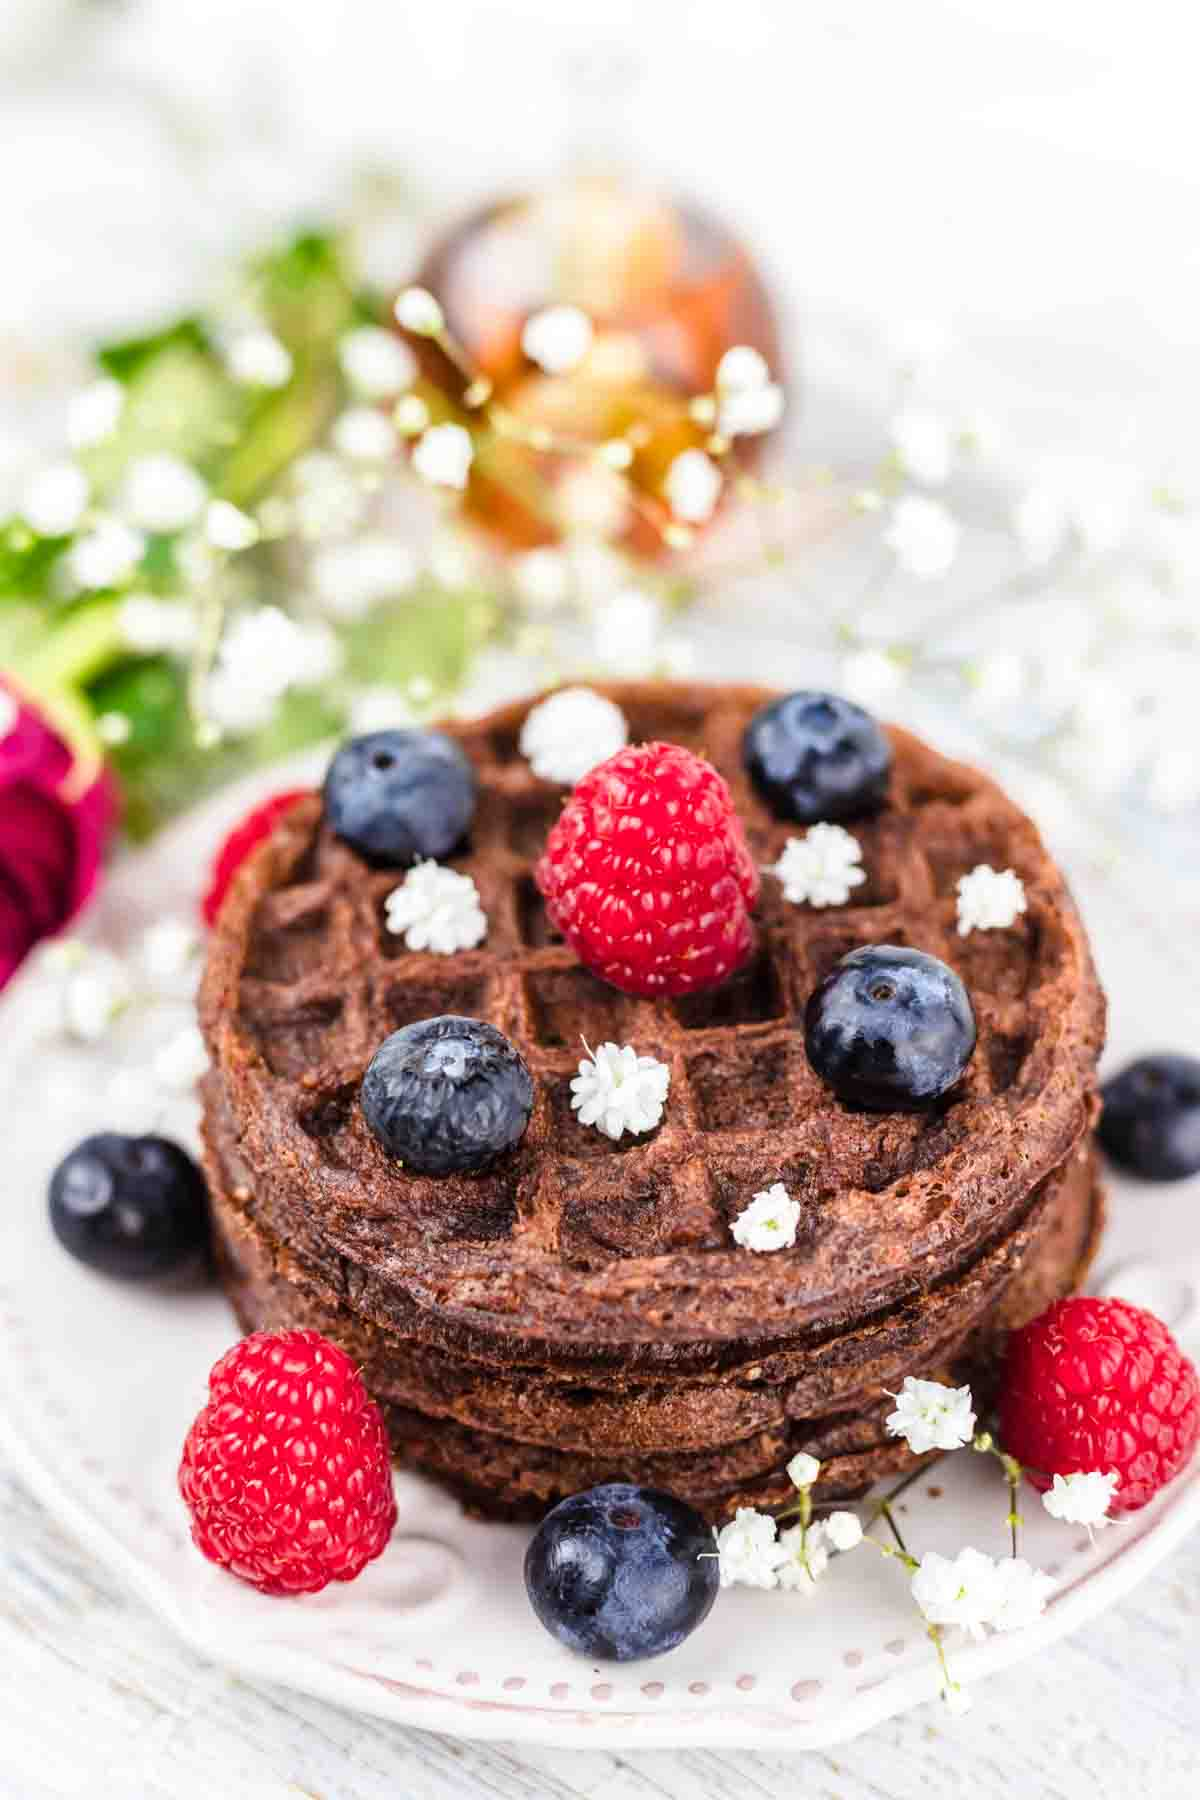 Best Chocolate Chaffle with raspberries and blueberries